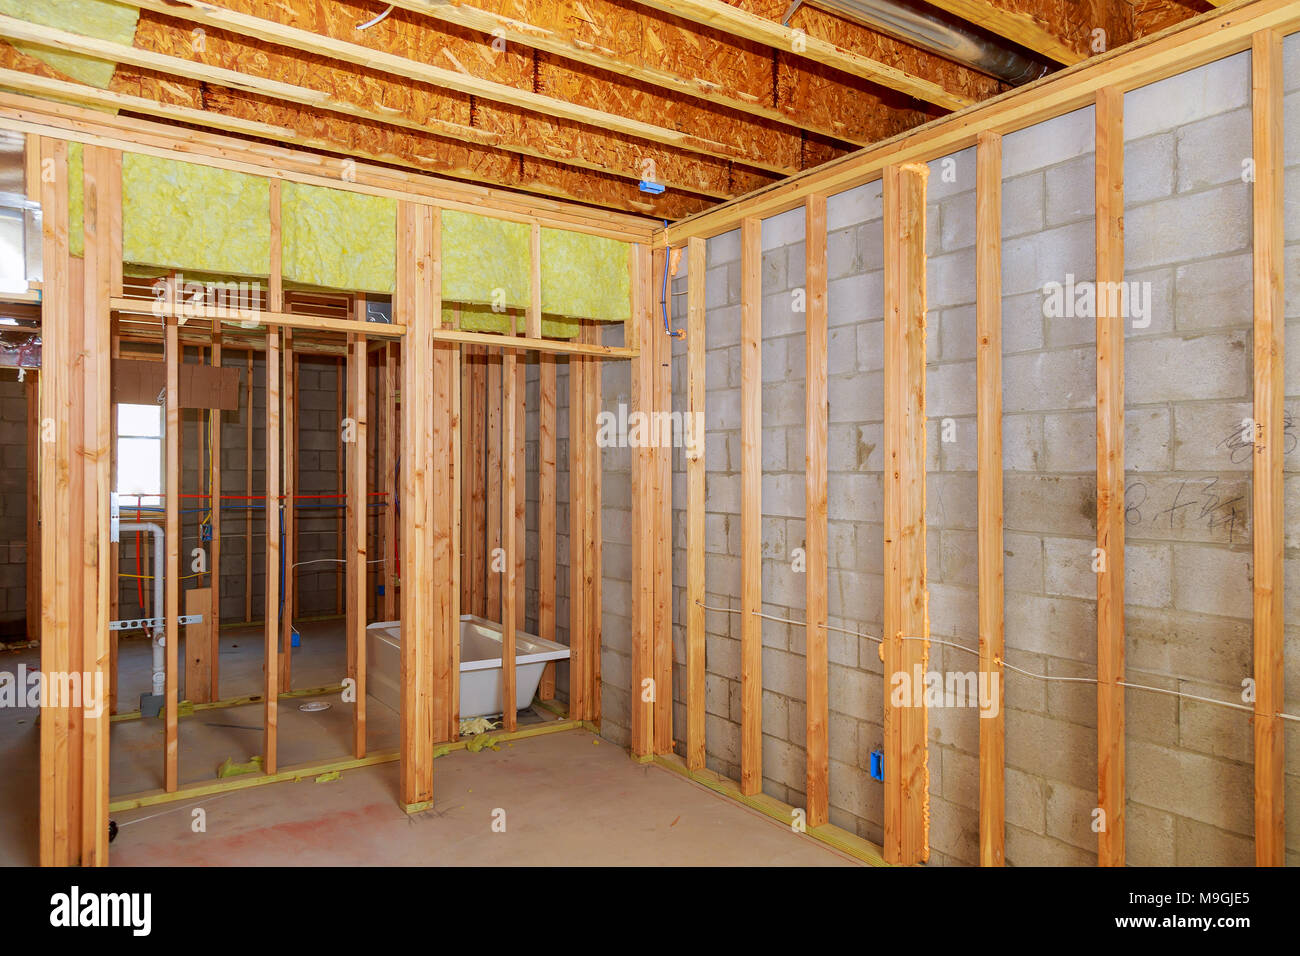 Remodeling a home bathroom moving plumbing for new sinks Interior wall framing with piping installation in the basement & Remodeling a home bathroom moving plumbing for new sinks Interior ...